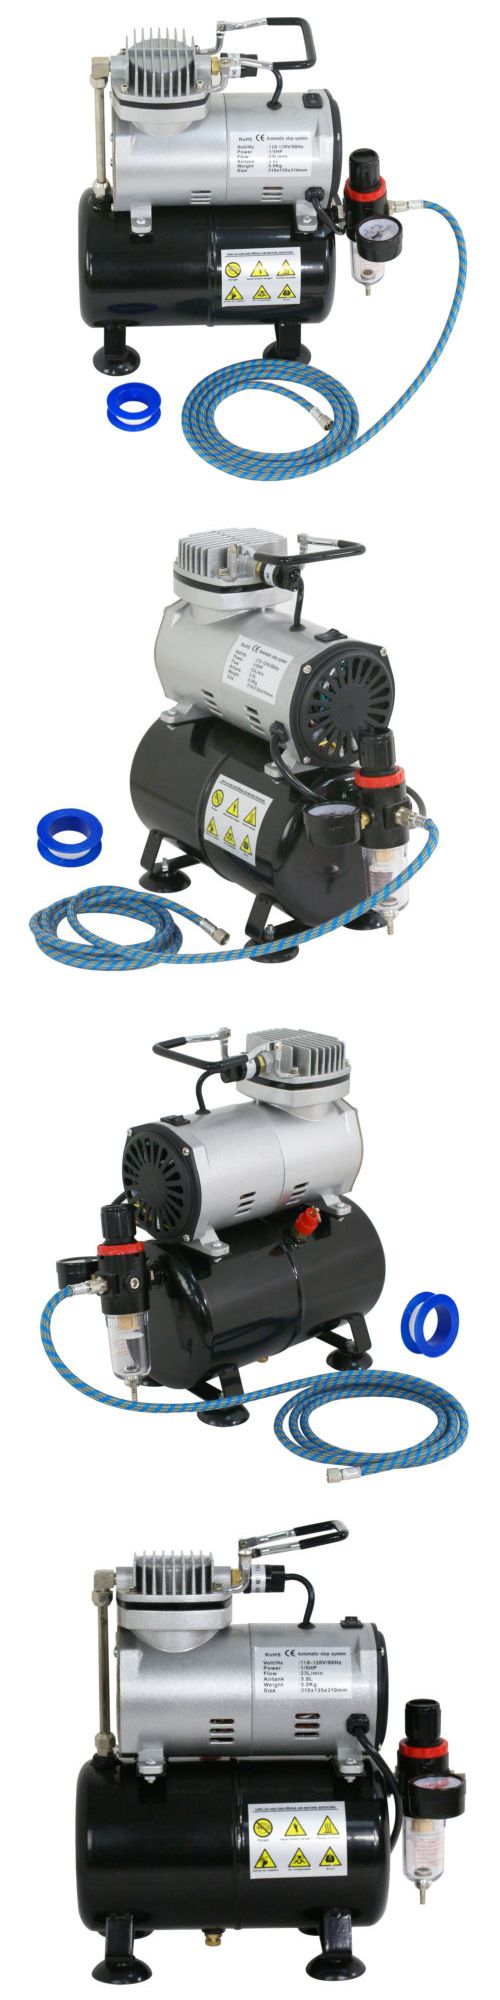 Systems and Sets 183095: Professional Air Compressor Kit With 3L Liter Air Tank - Paint Hobby Cake Tattoo -> BUY IT NOW ONLY: $54.99 on eBay!